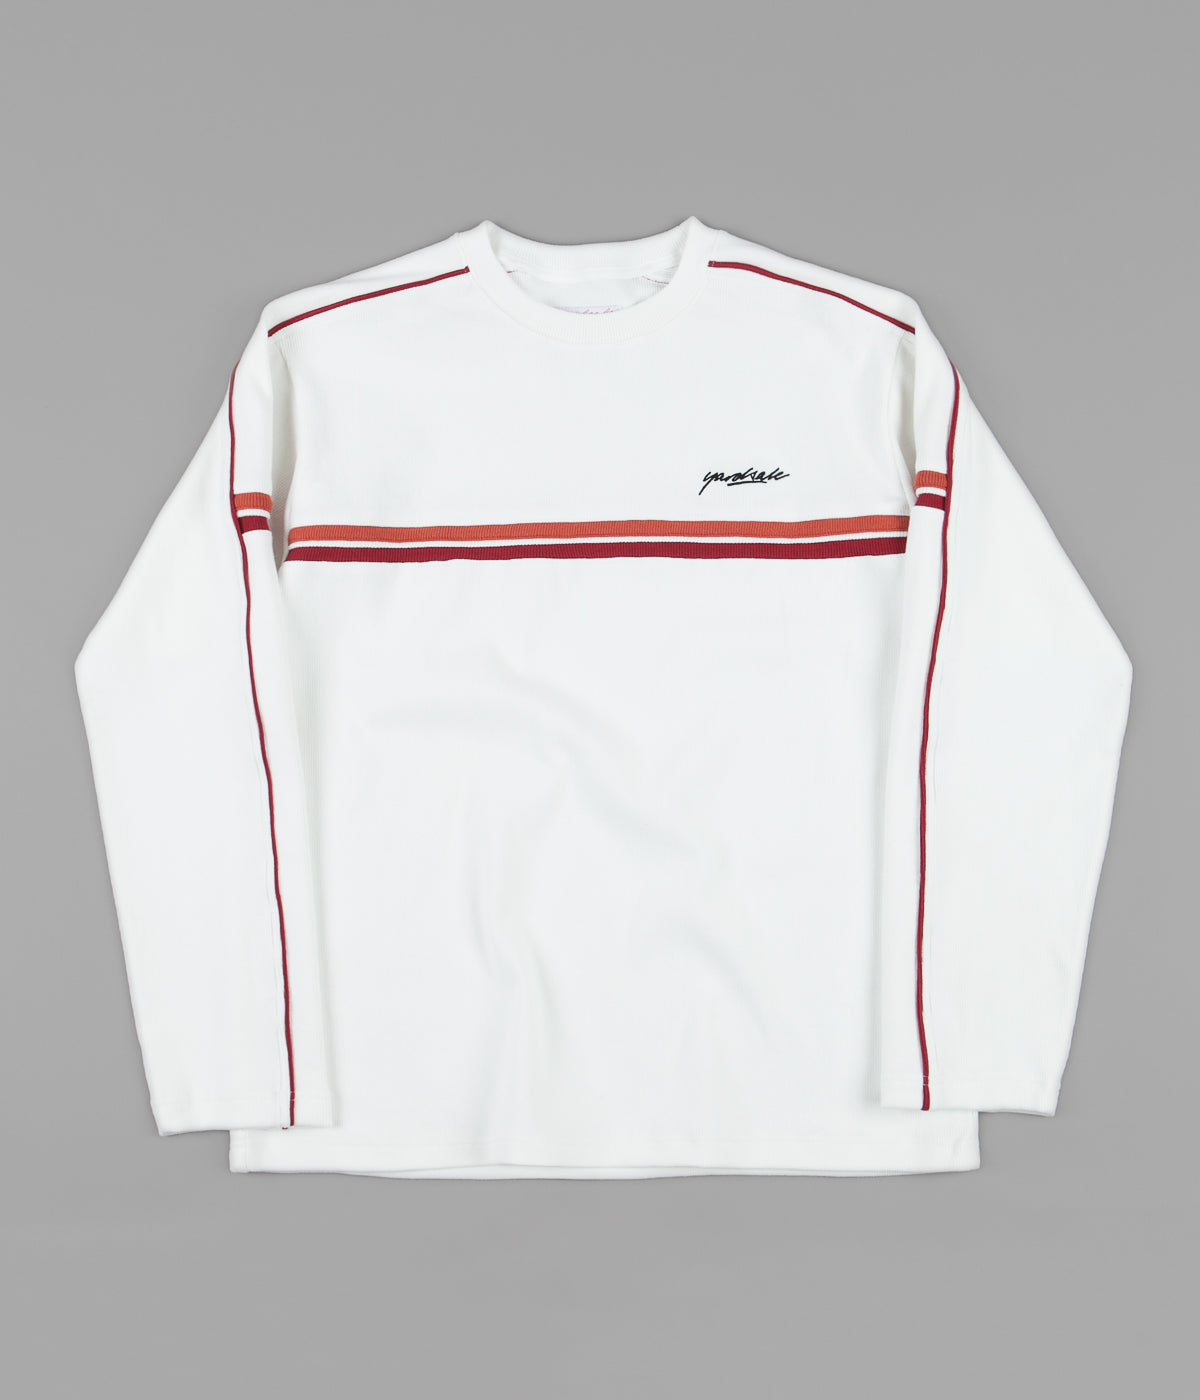 Yardsale Pacific Ribbed Crewneck Sweatshirt - Off White